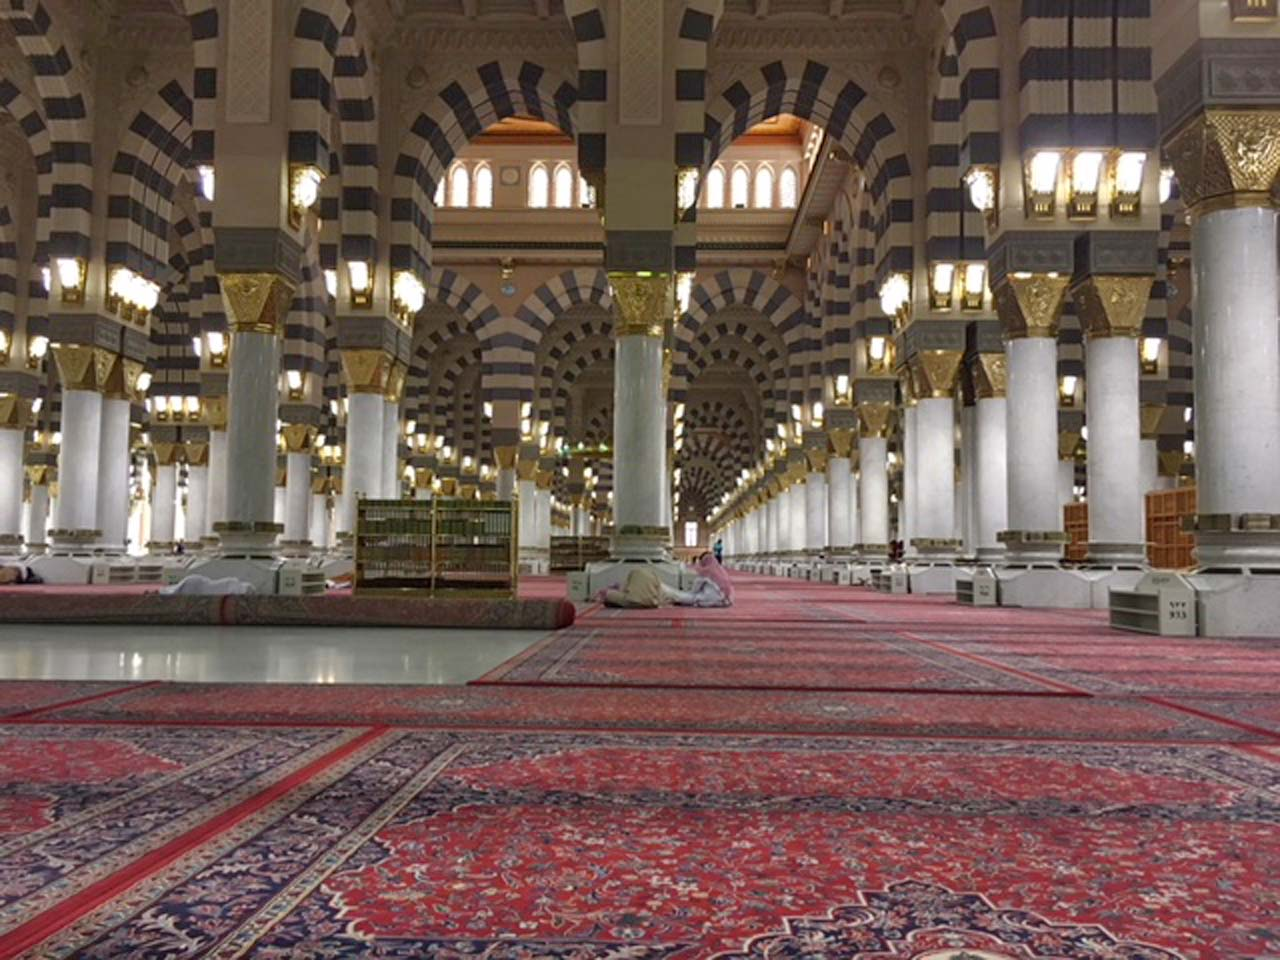 Inside view of the Masjid-e-Nabwi